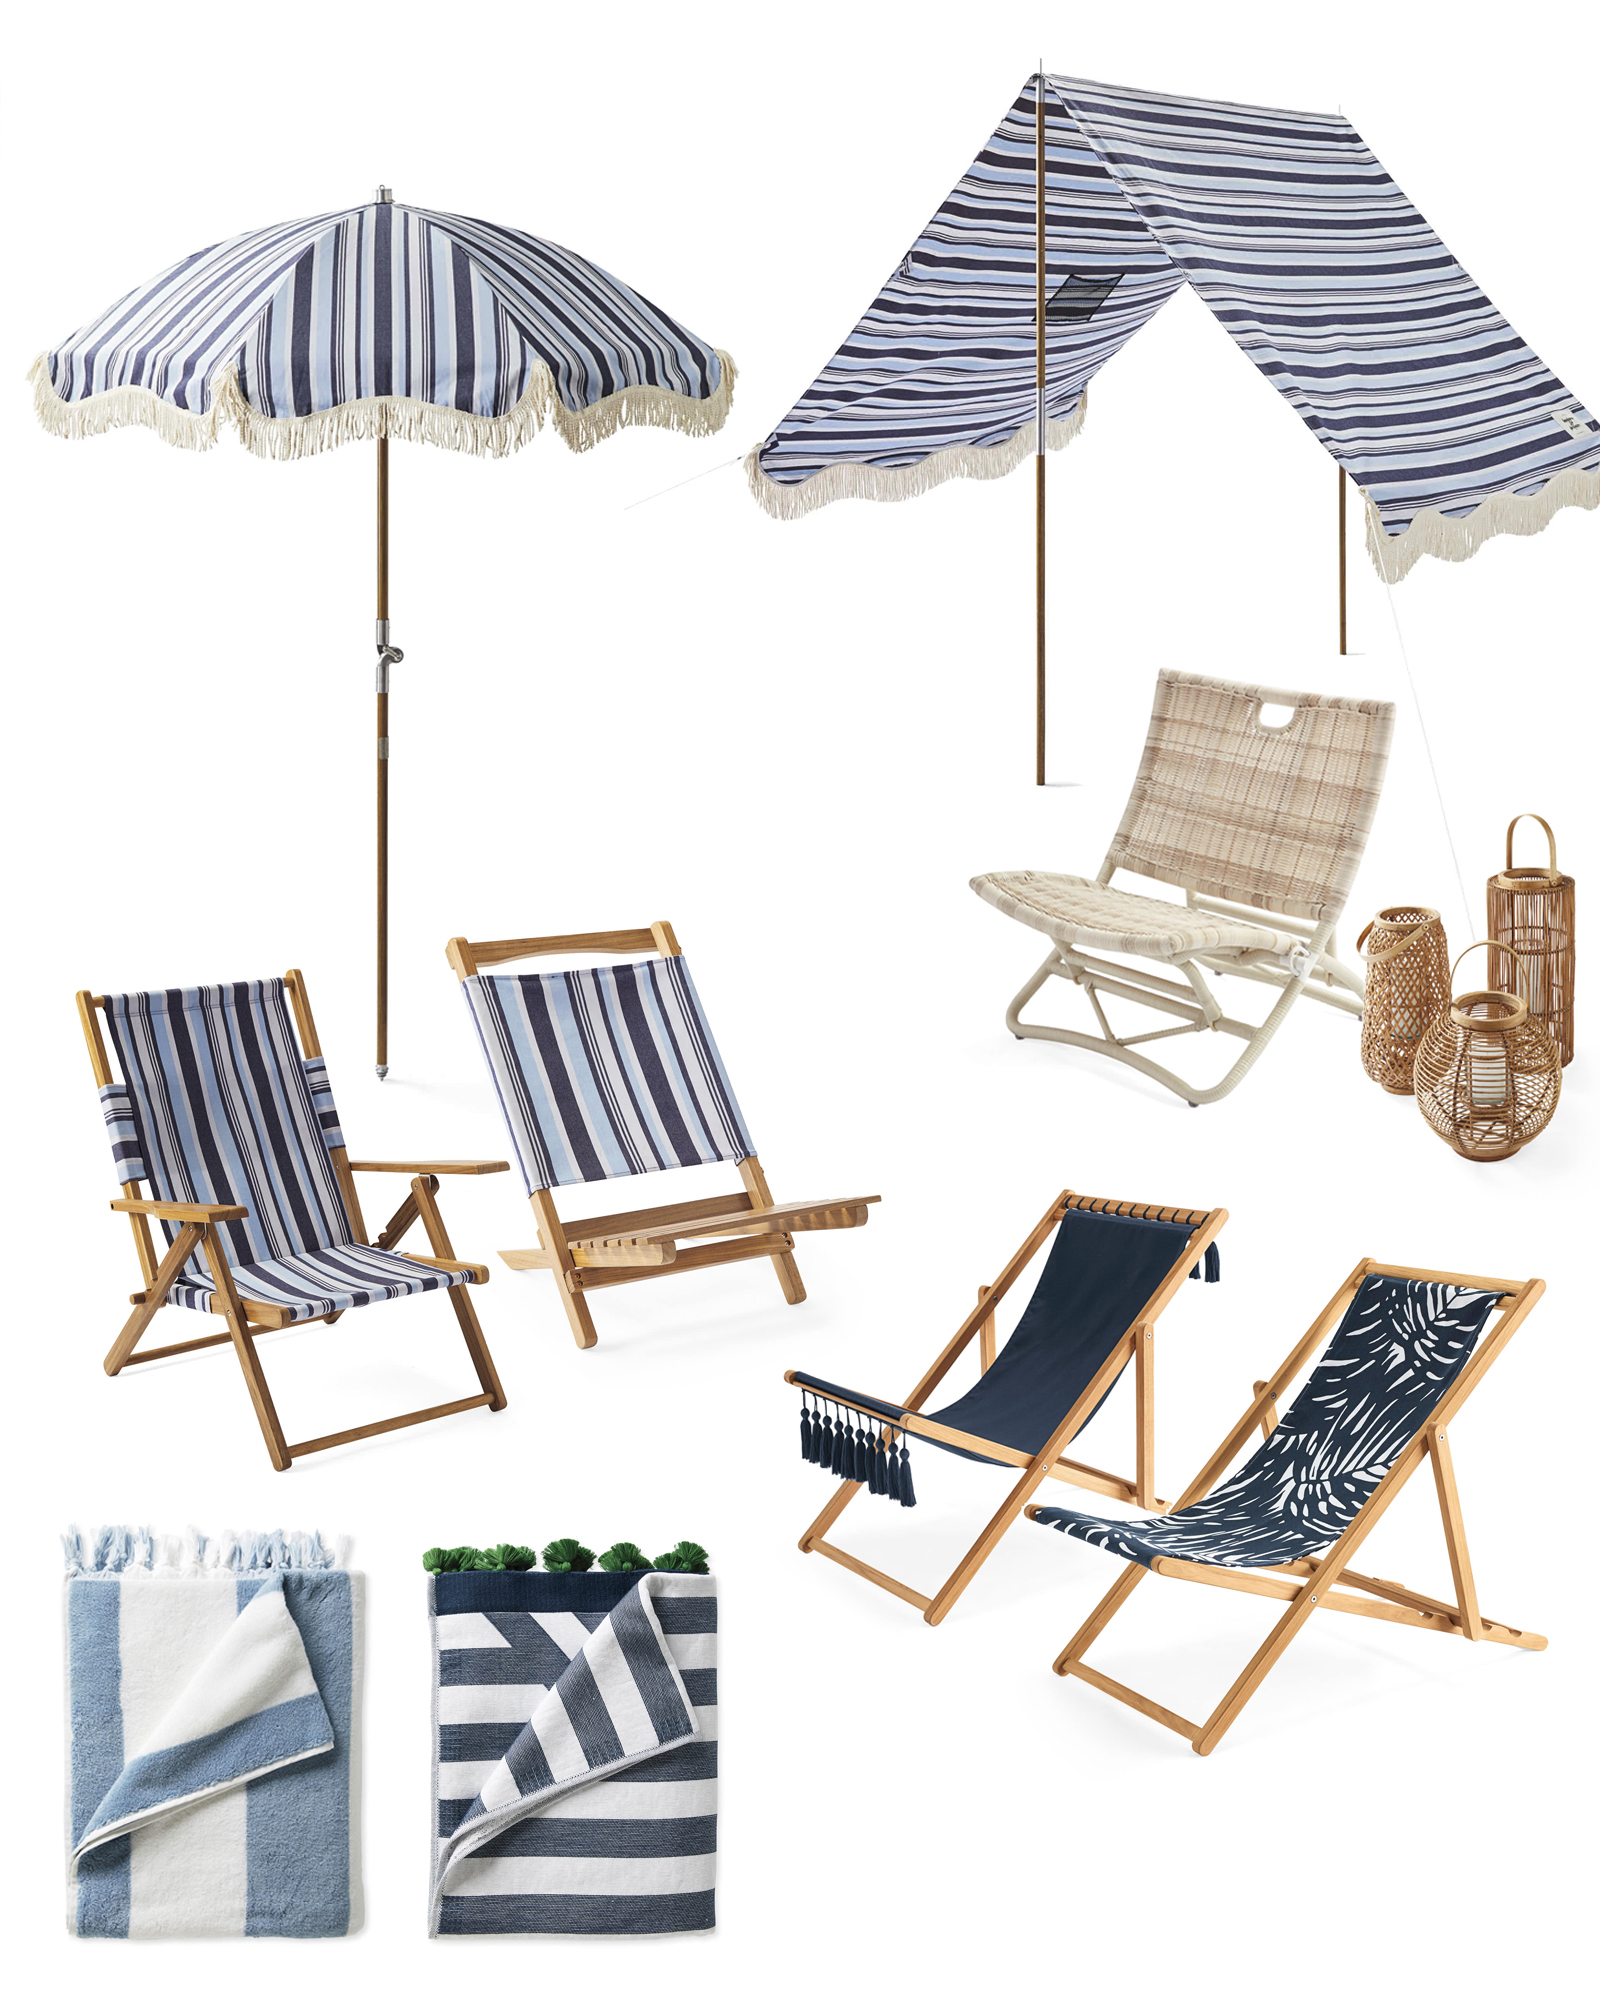 beach essentials for sun, shade, and sand